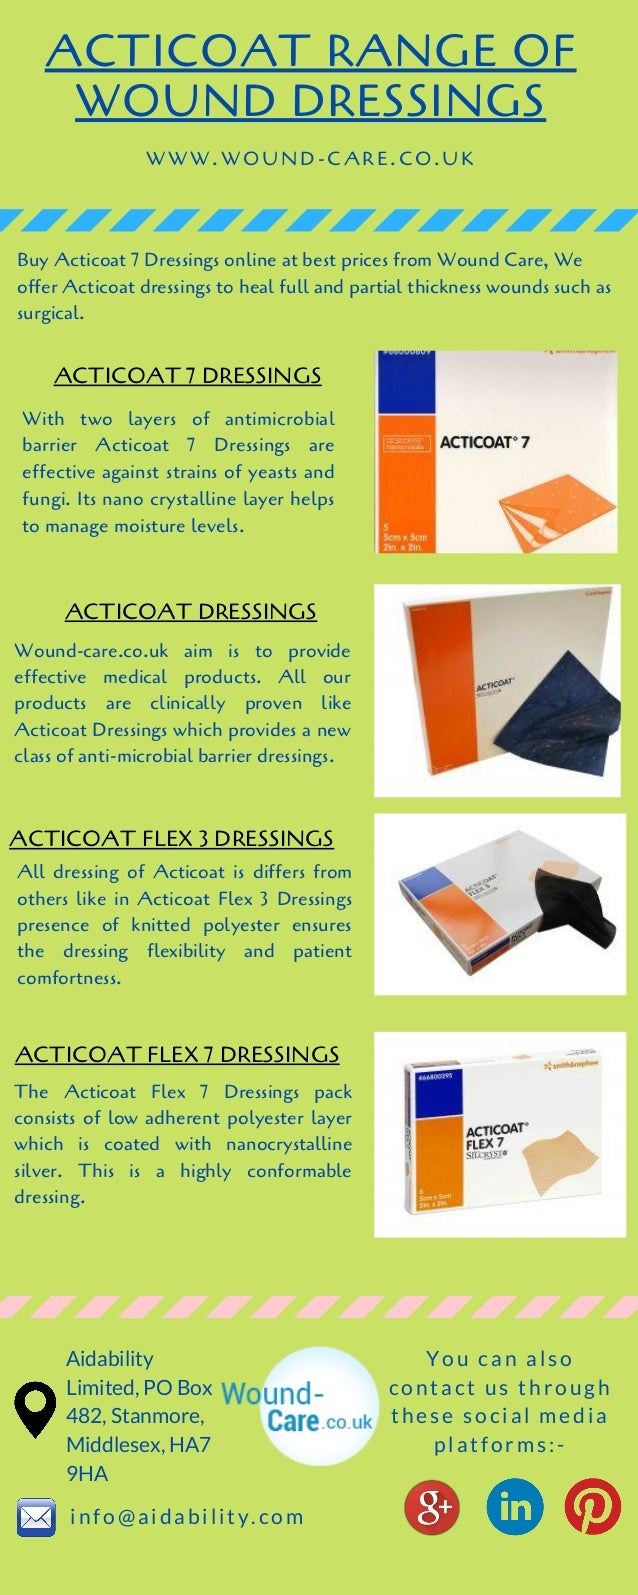 ACTICOAT RANGE OF WOUND DRESSINGS With two layers of antimicrobial barrier Acticoat 7 Dressings are effective against stra...